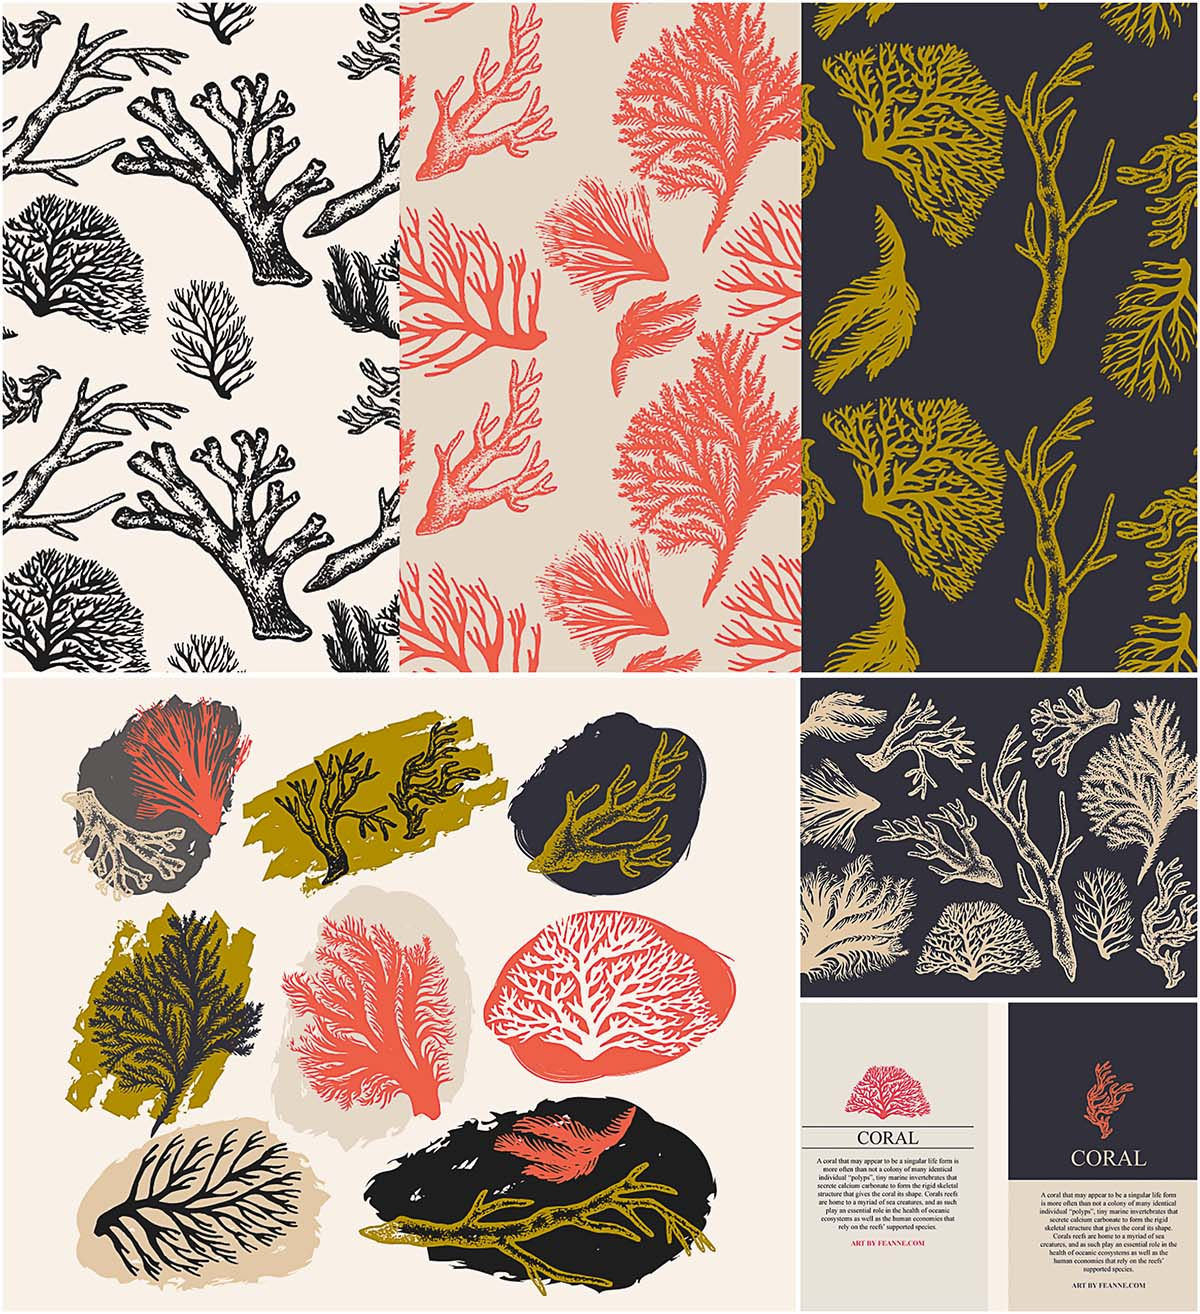 Coral and seaweed illustration vector set